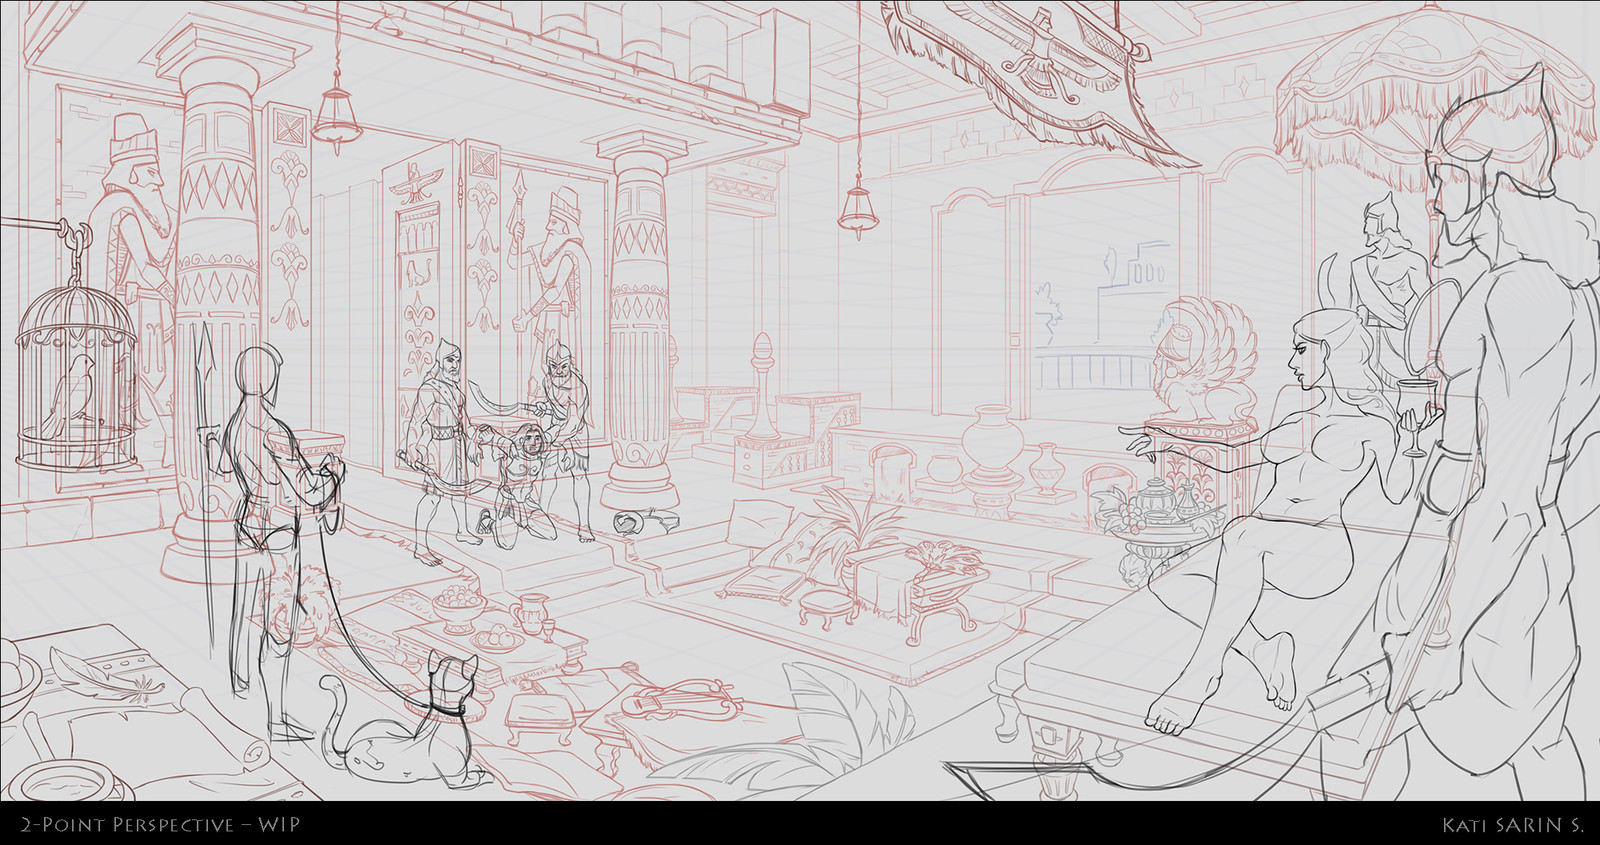 During the work in progress of making line art.